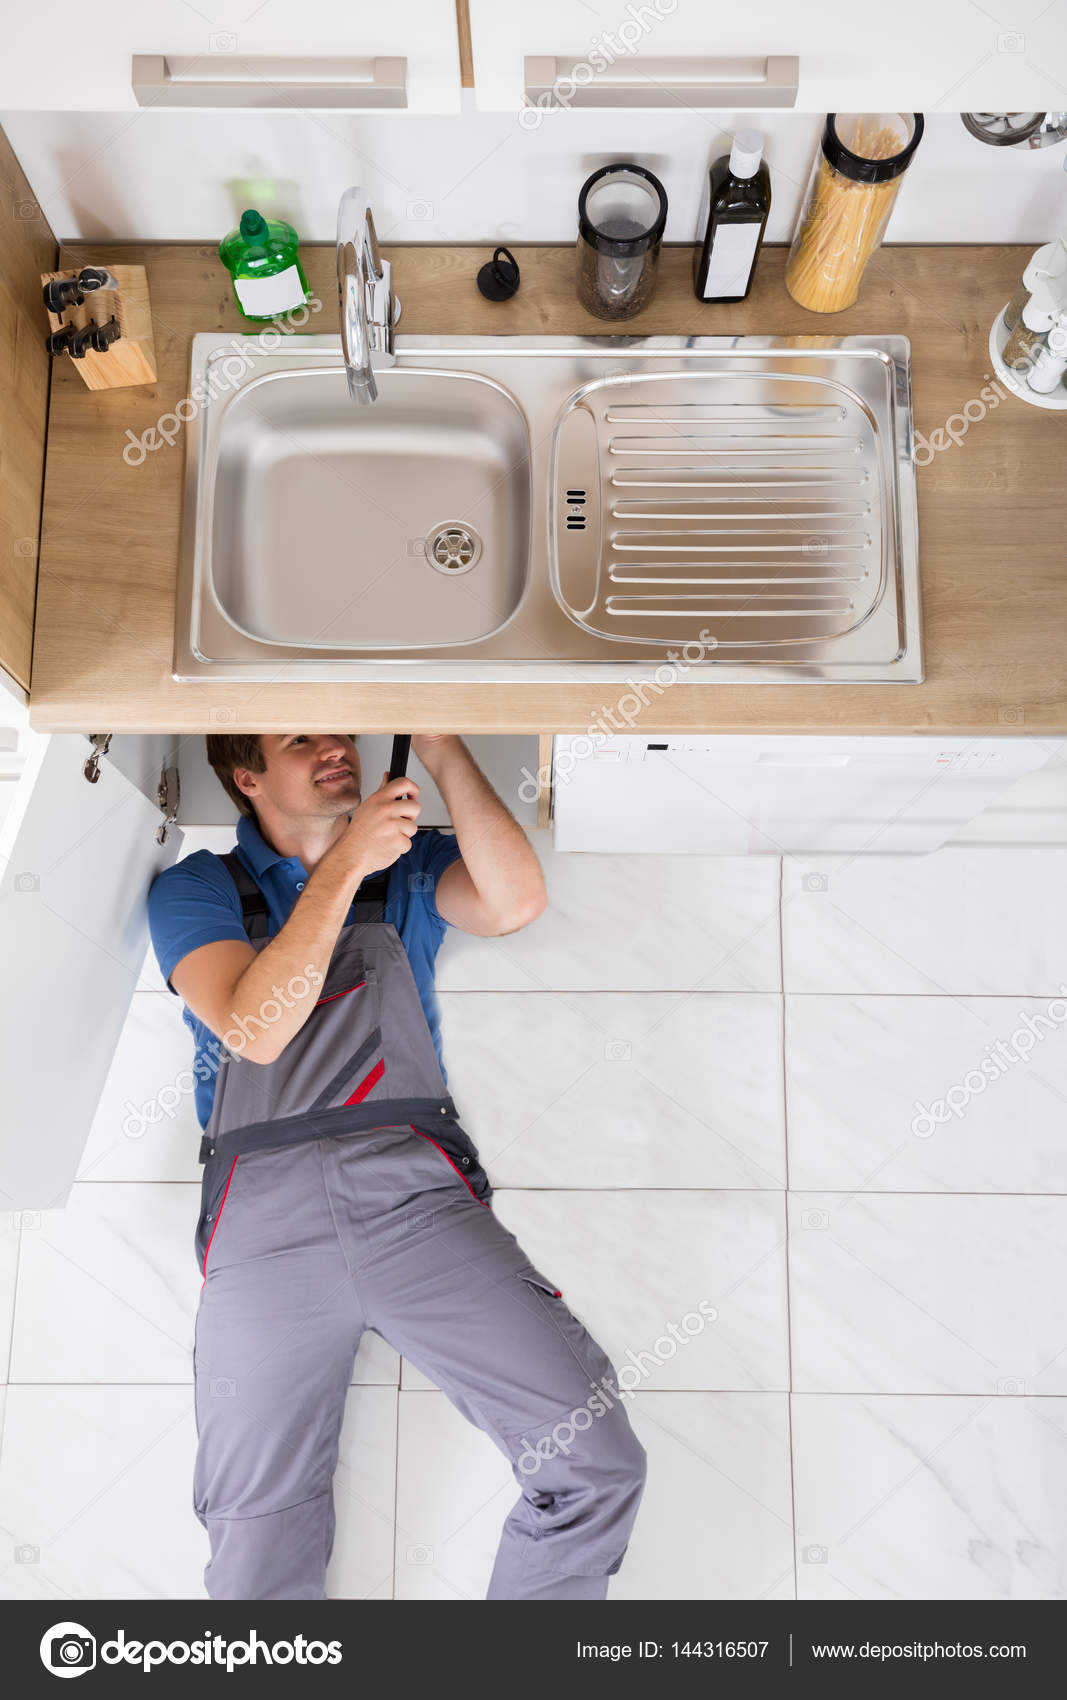 Smiling Plumber Fixing Sink — Stock Photo © AndreyPopov #144316507